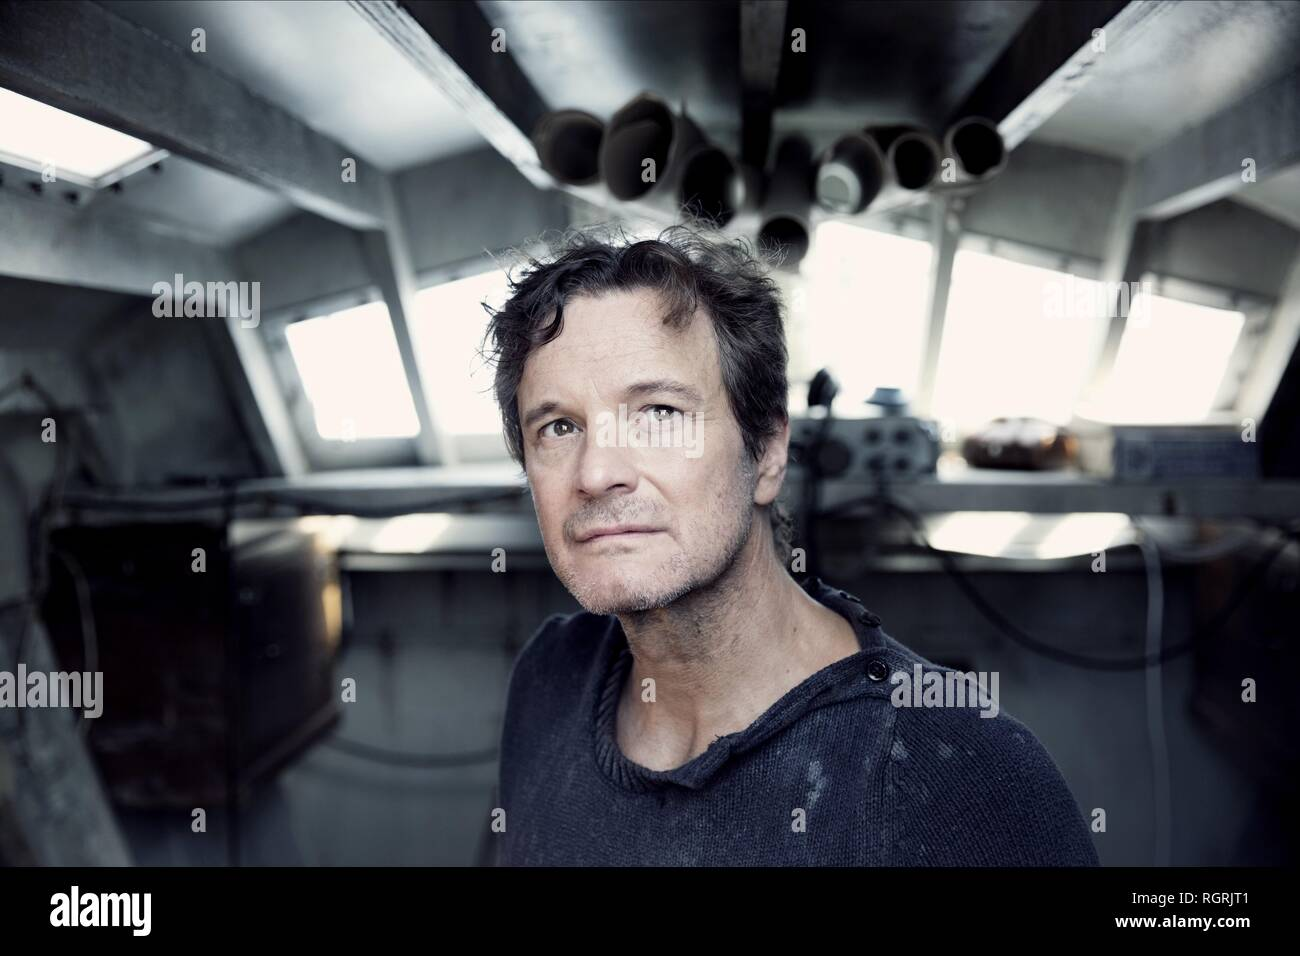 COLIN FIRTH THE MERCY (2018) - Stock Image